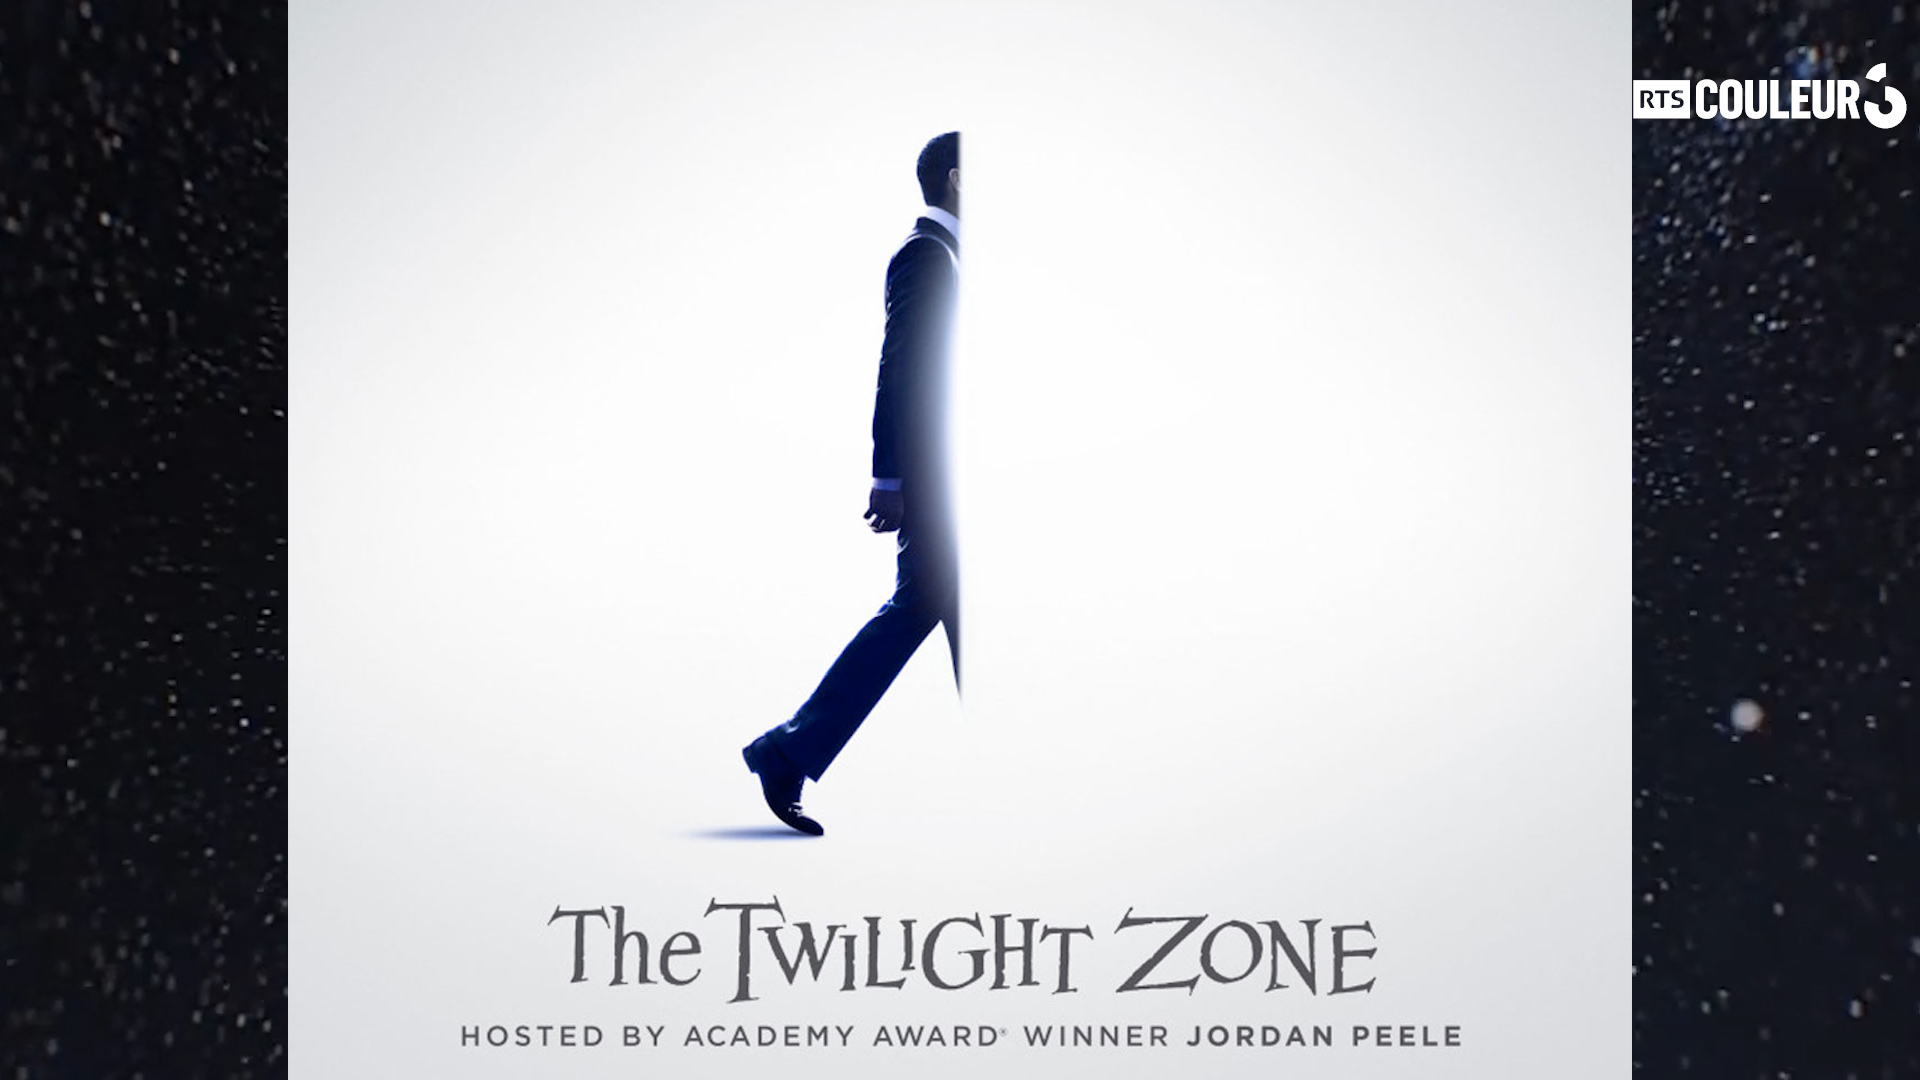 La loi des séries - The Twilight Zone